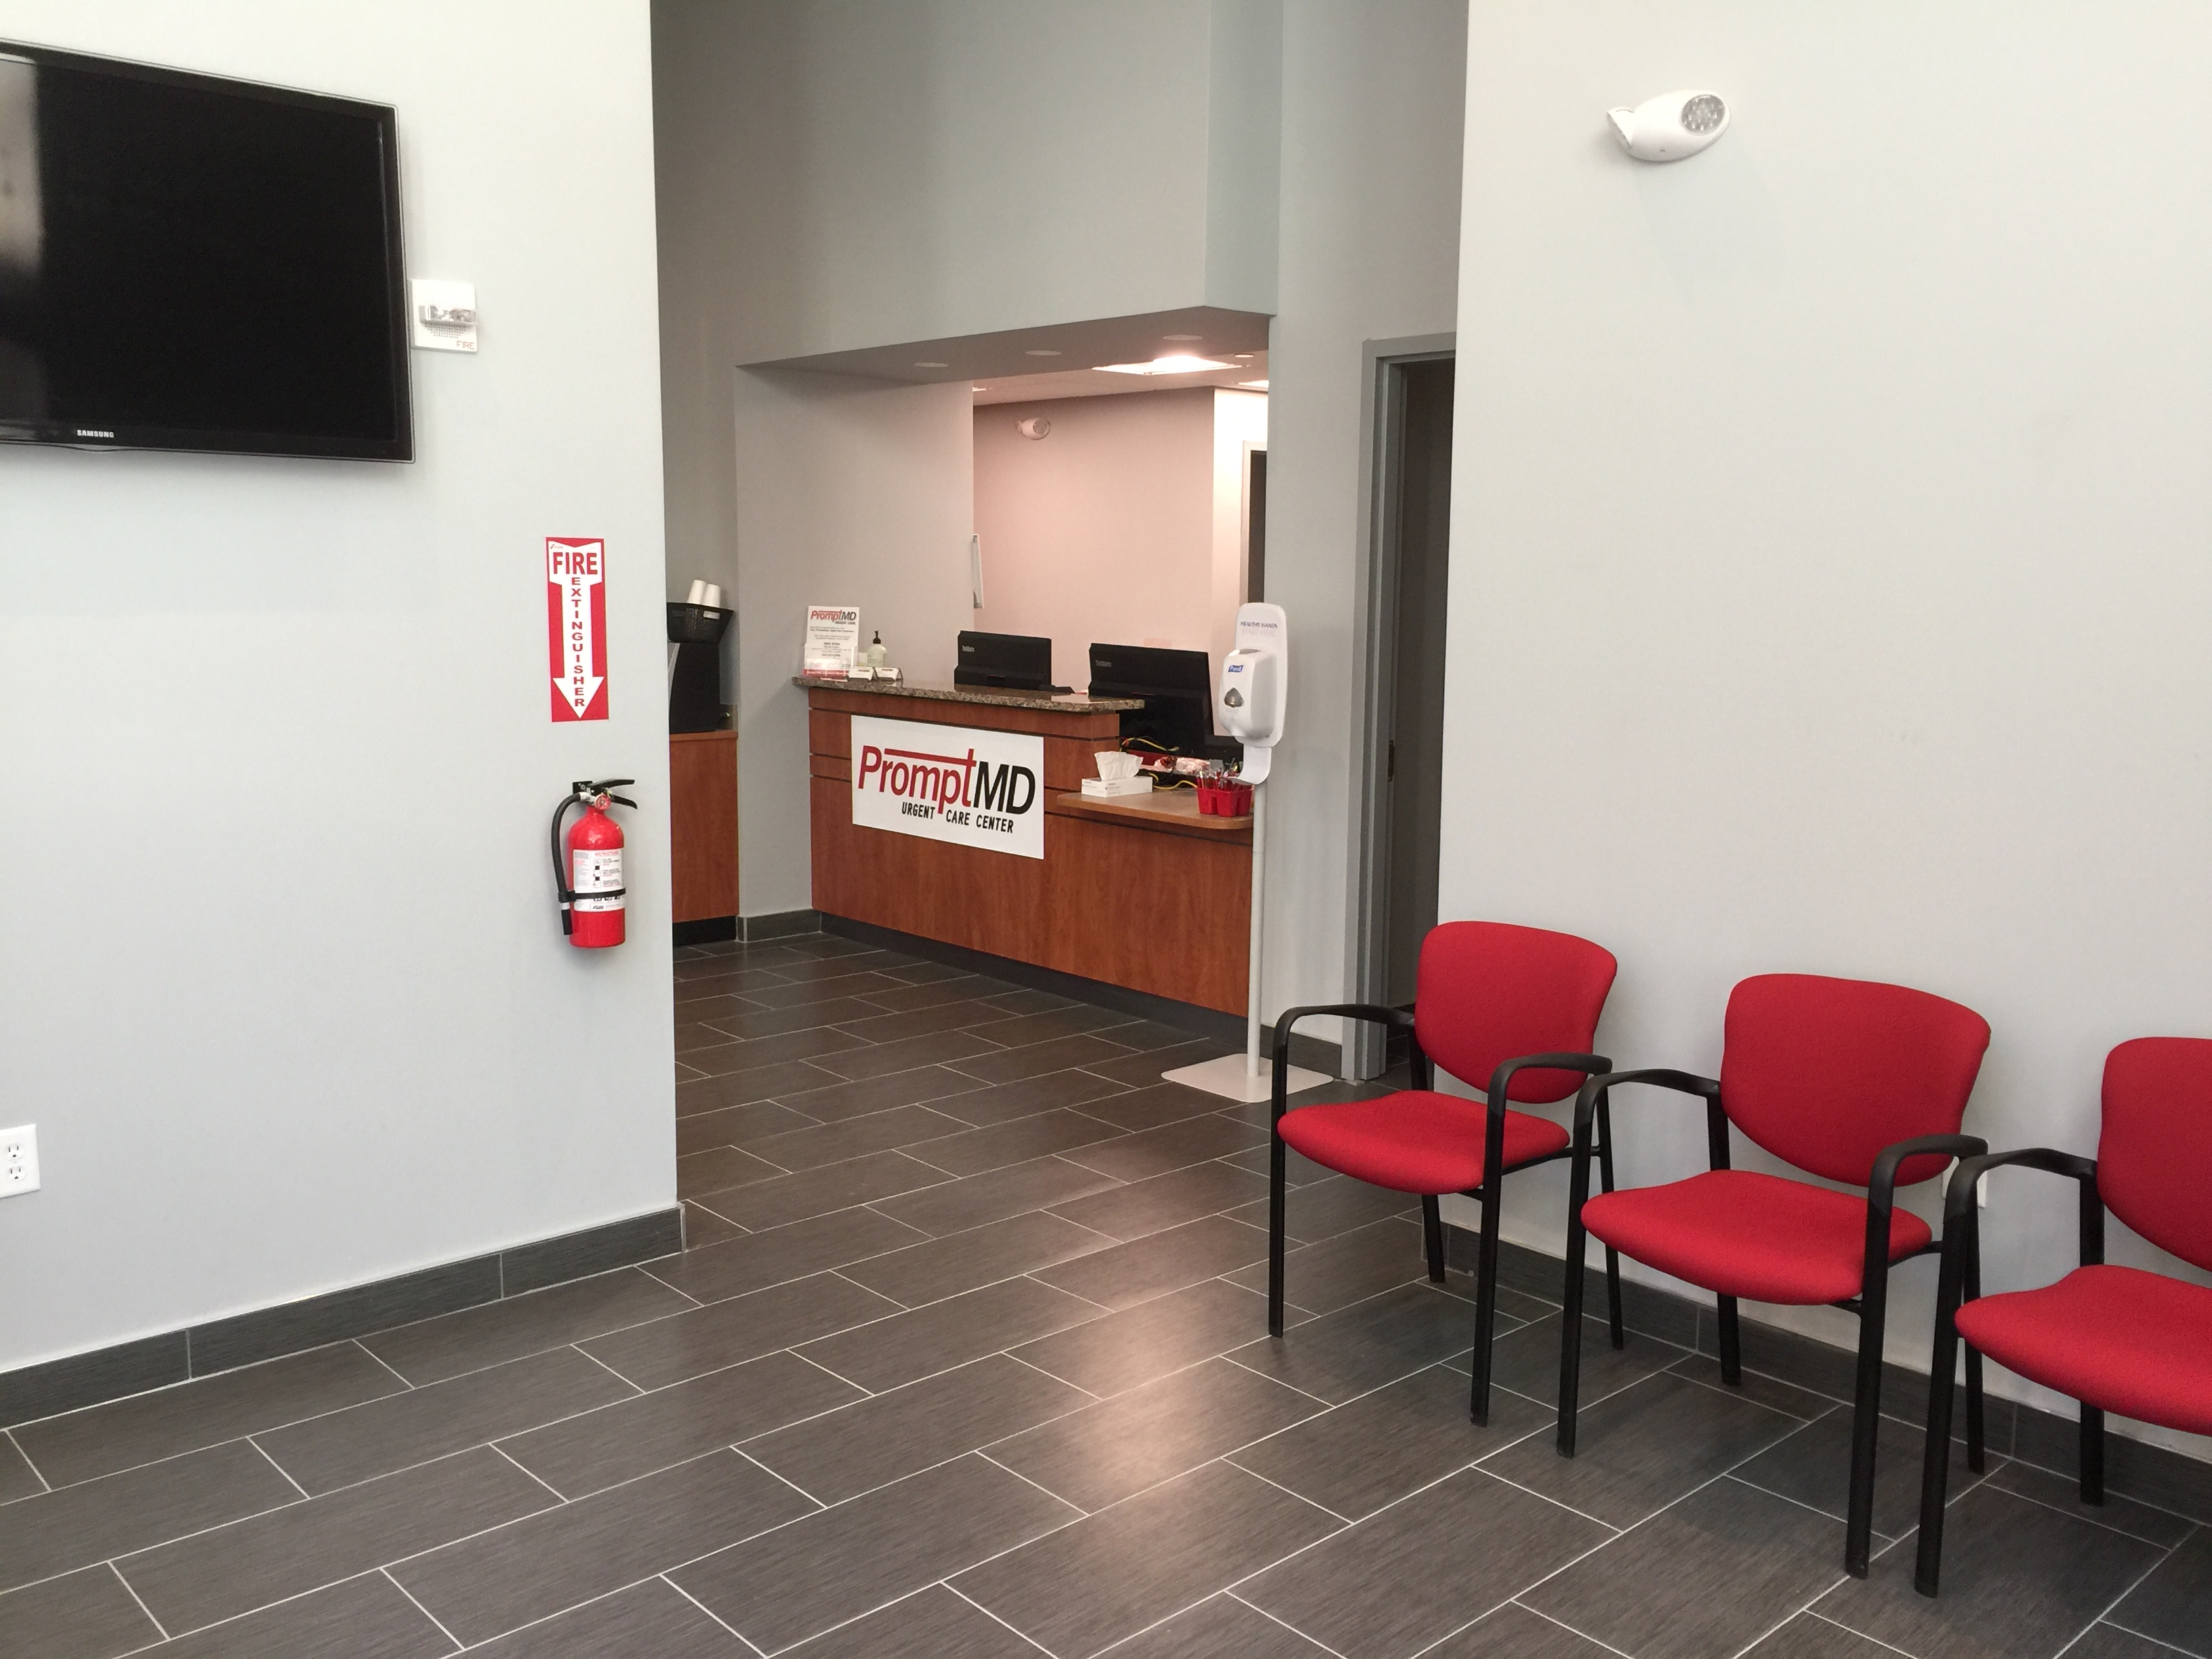 PromptMD Urgent Care Center Jersey City image 2